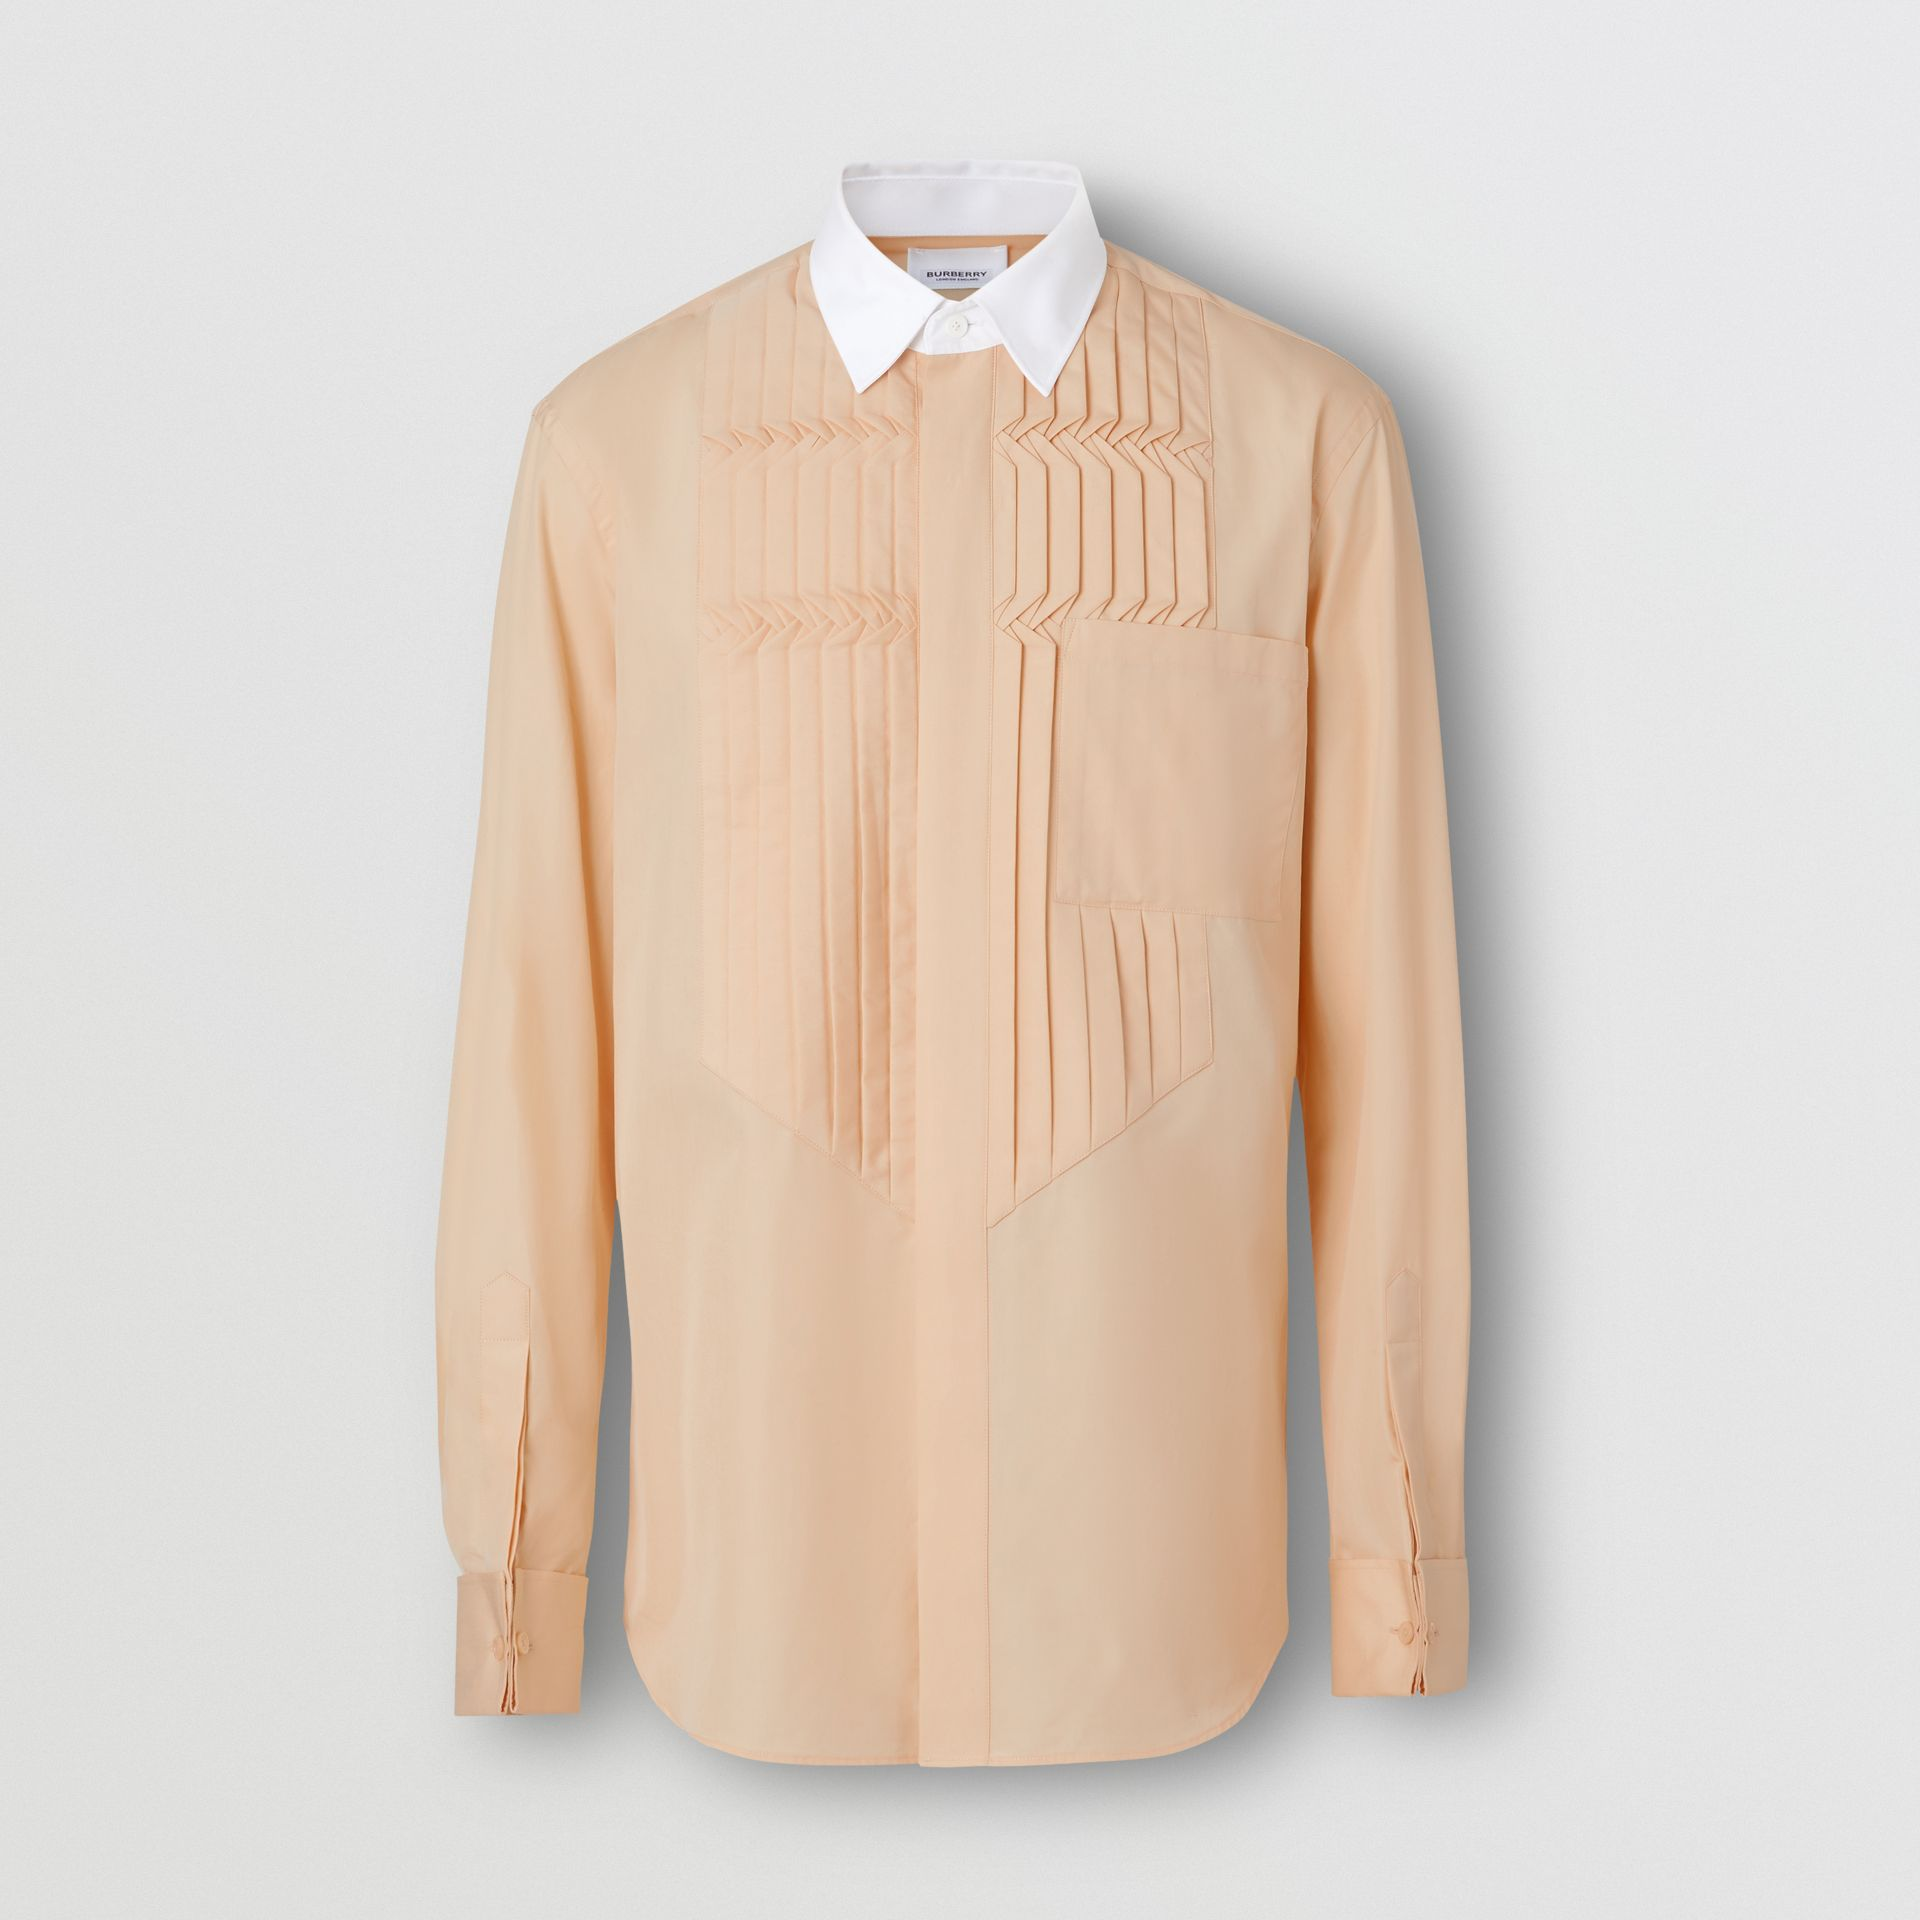 Classic Fit Pleated Bib Cotton Poplin Dress Shirt in Buttermilk - Men | Burberry - gallery image 3